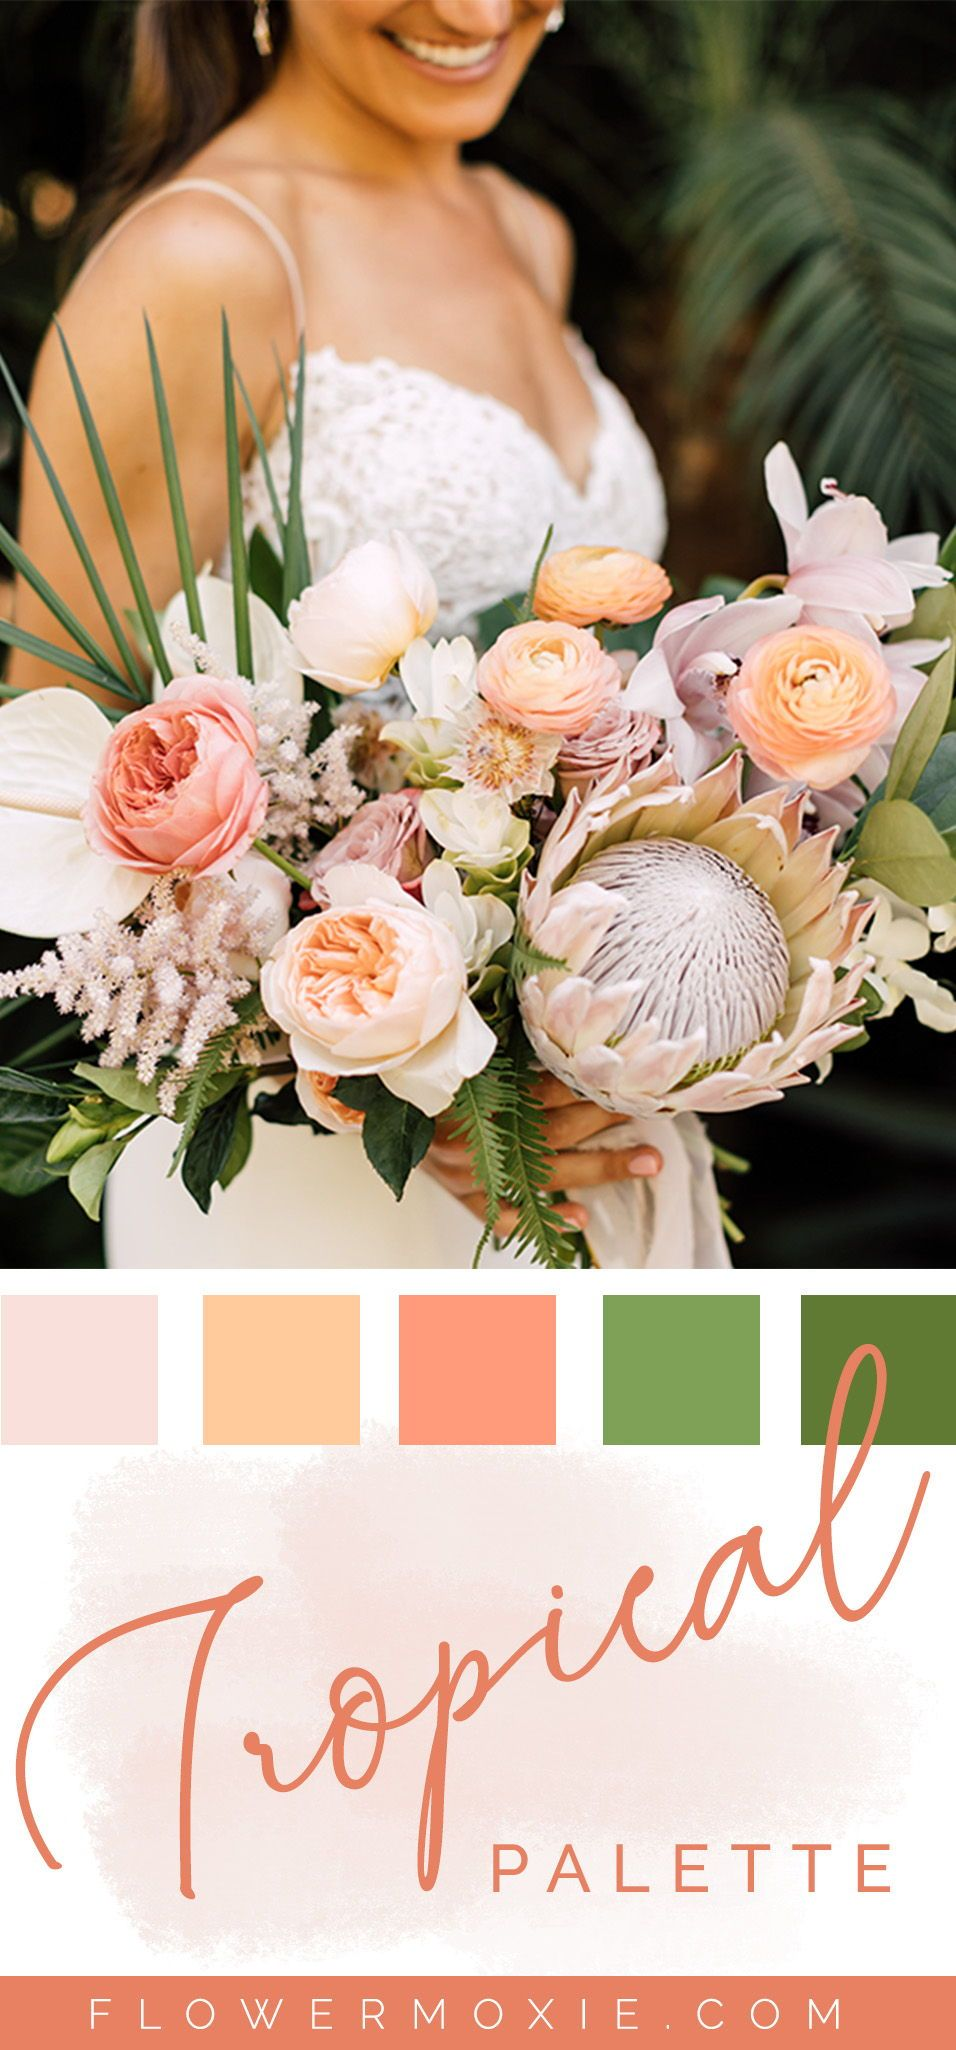 Get Inspired By Our Wedding Flower Packages Mix Match Flowers To Achieve The Look You Wedding Flower Packages Flower Arrangements Diy Online Wedding Flowers